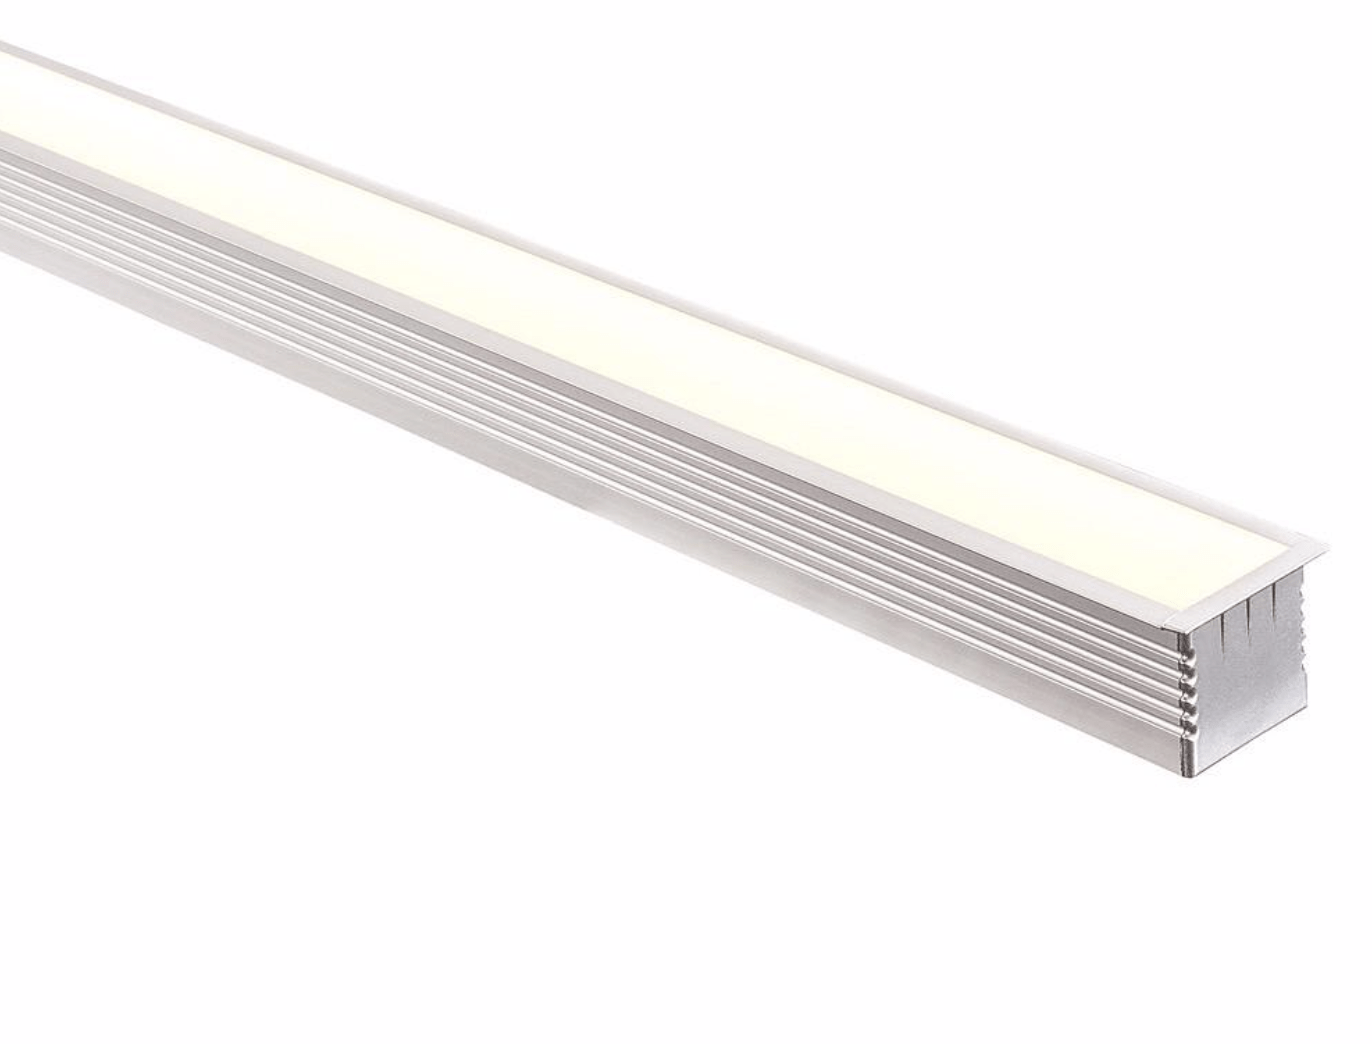 Profiles Recessed Profile - Large Square Winged - HV9695-4435 lighting shops lighting stores LED lights  lighting designer